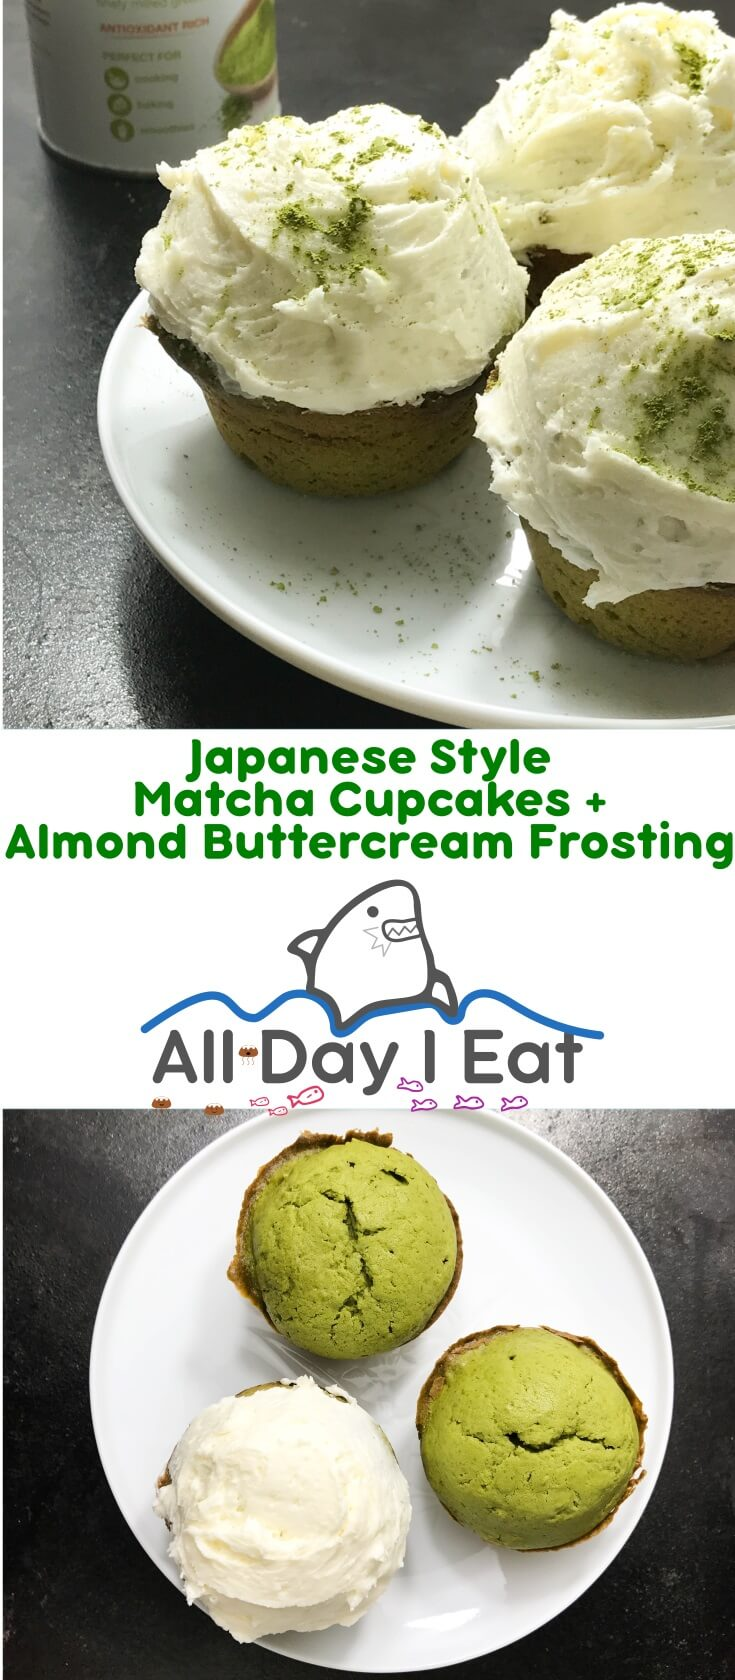 Japanese Style Matcha Cupcakes with Almond Buttercream Frosting. Increase your tea intake and enjoy the taste of these light, fluffy green cupcakes that are perfectly topped with aromatic almond frosting | www.alldayieat.com